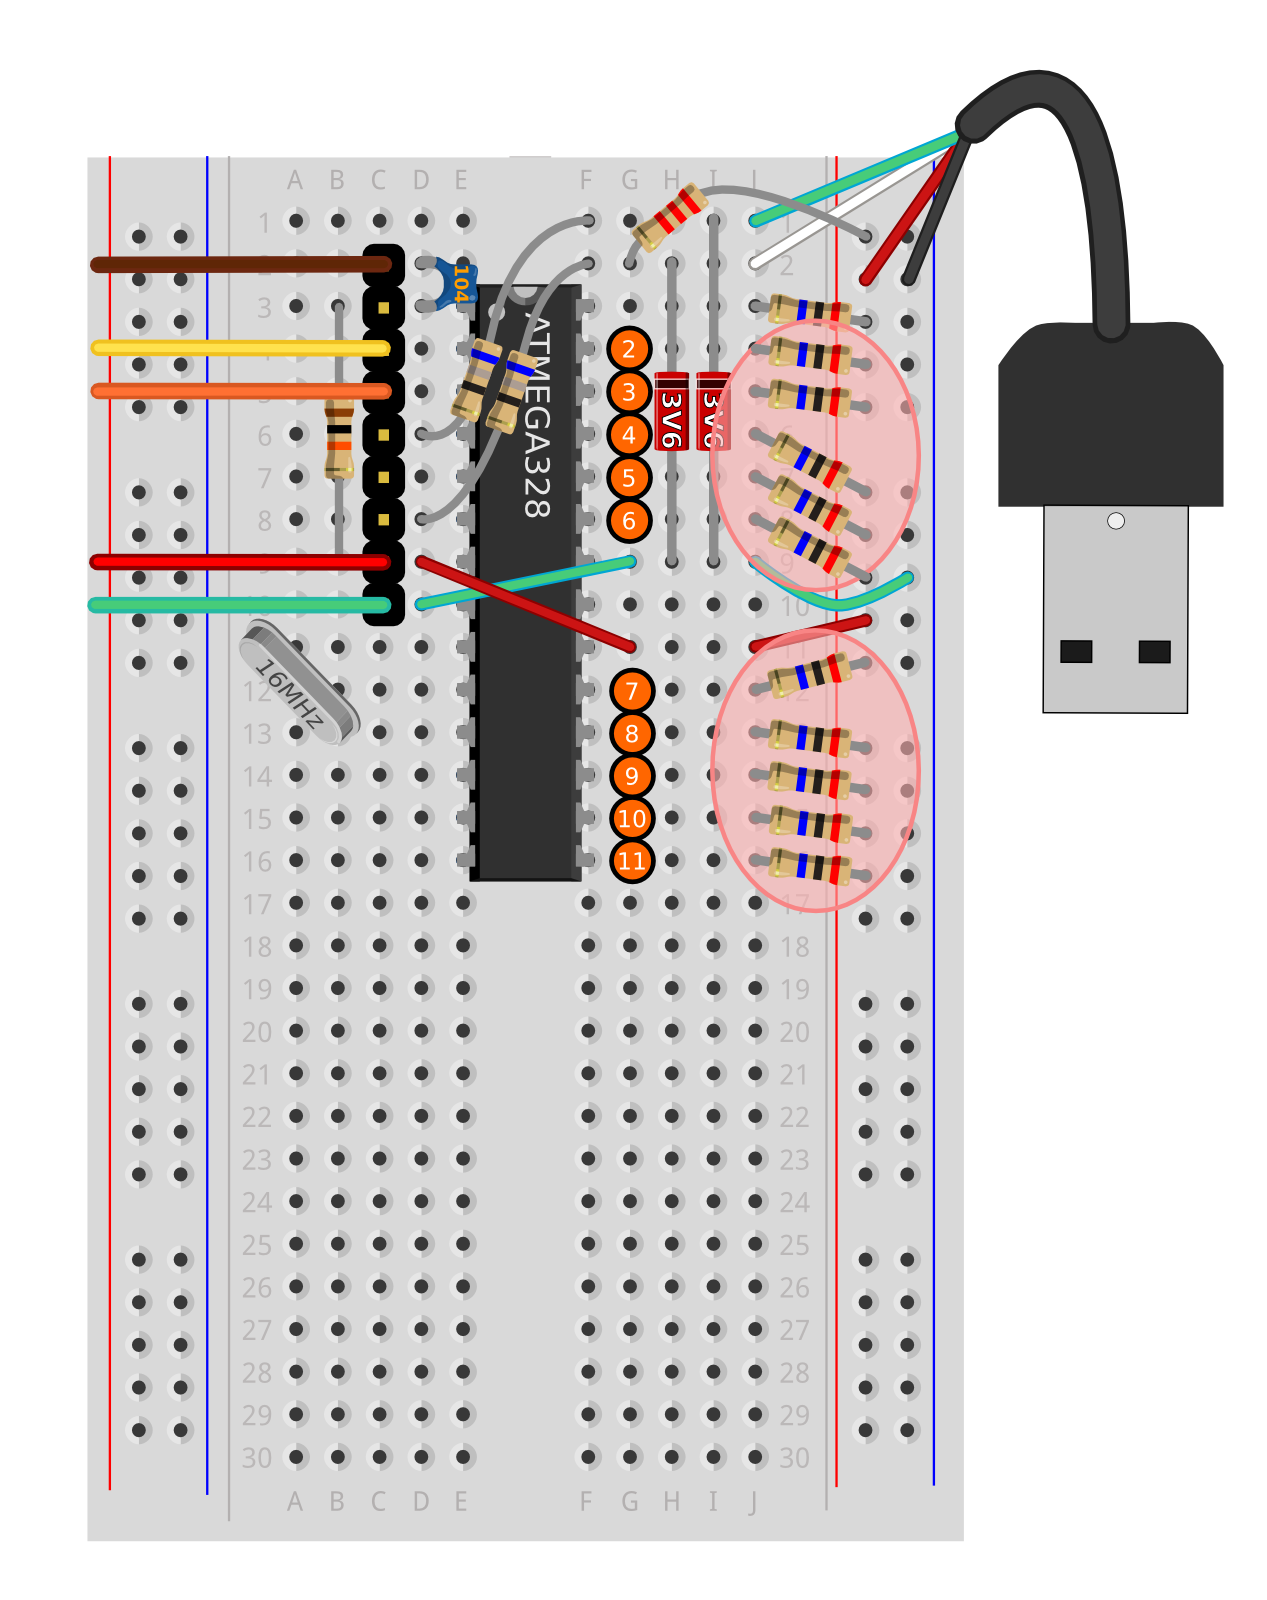 About This Guide Built The Circuit Up On Some Strip Board And Added Banana We Can Have Multiple Different Wires Which Be Monitored Independently In Way You Create A Piano With To 16 Keys